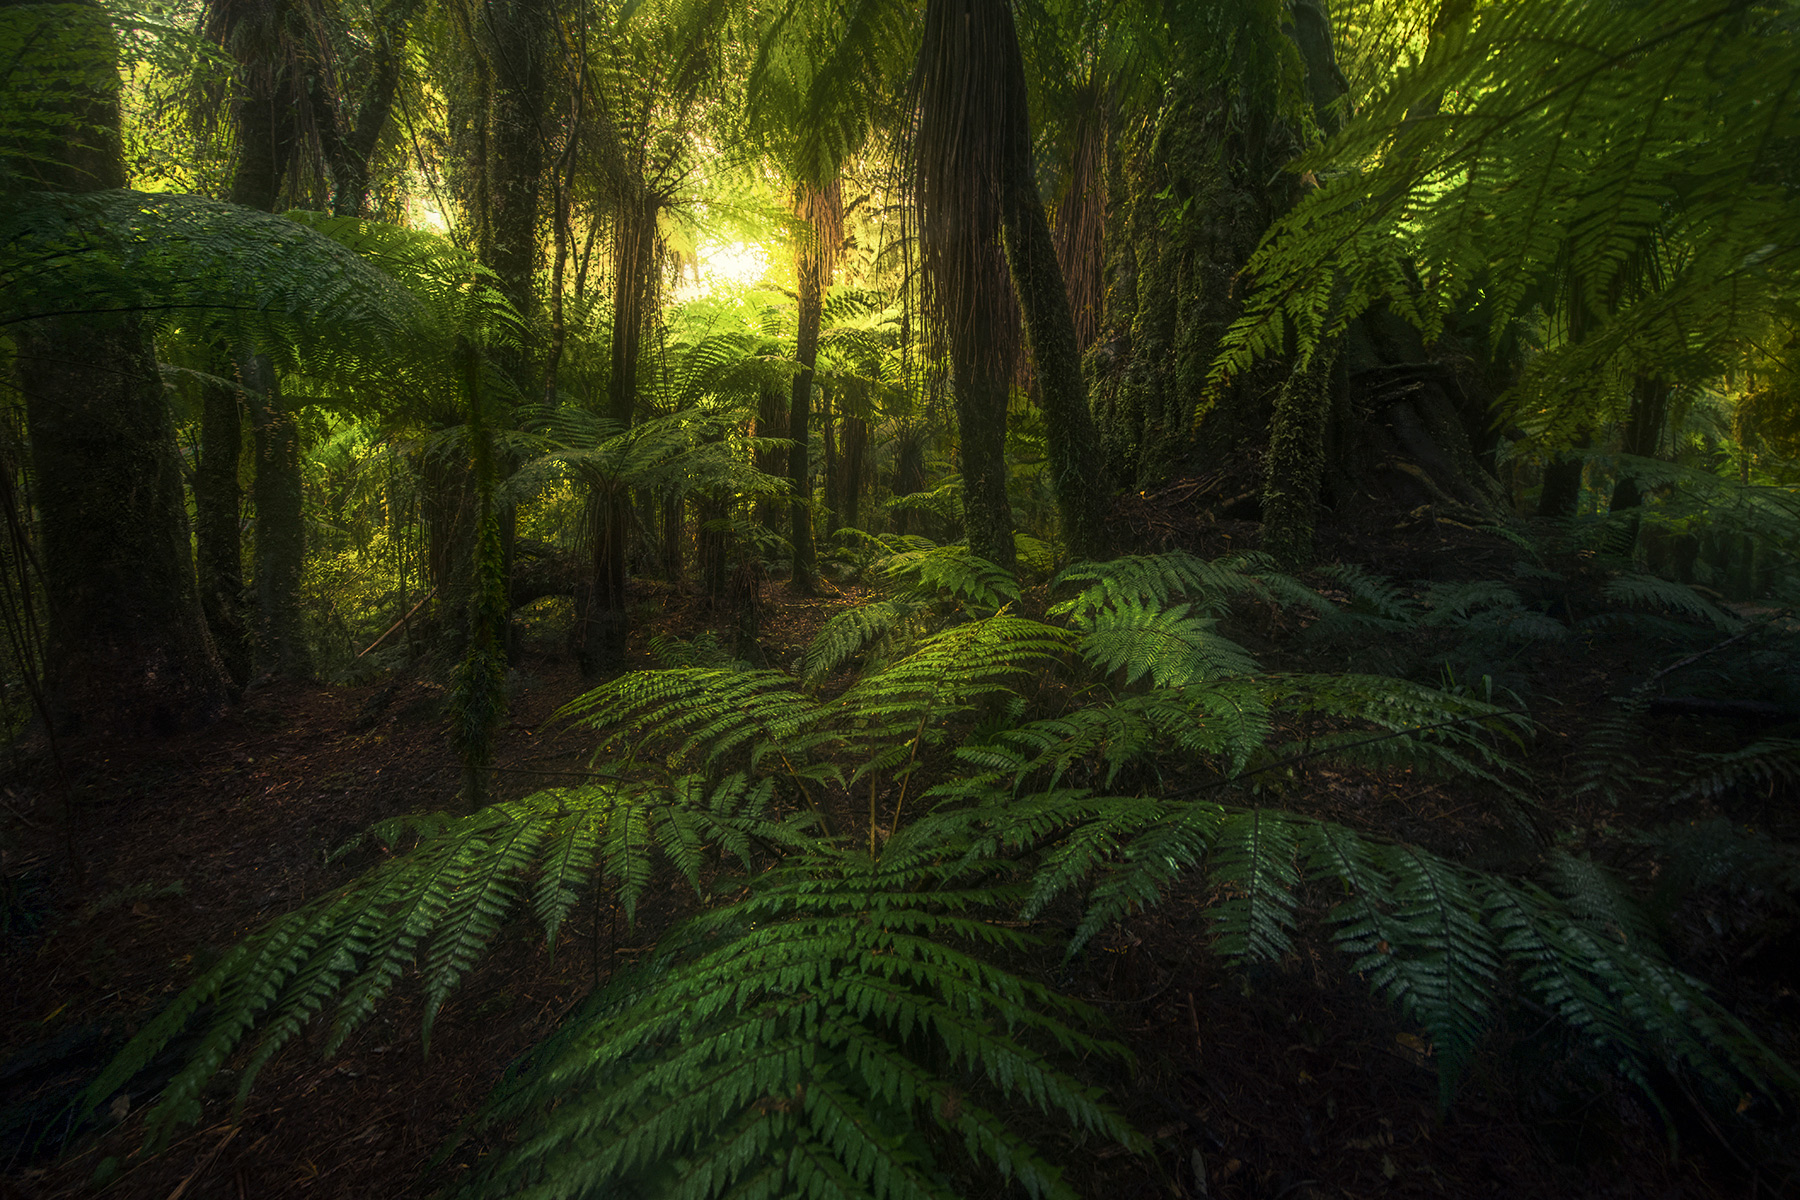 fern, forest, New Zealand, rainforest, South Island, green, mosses, photo